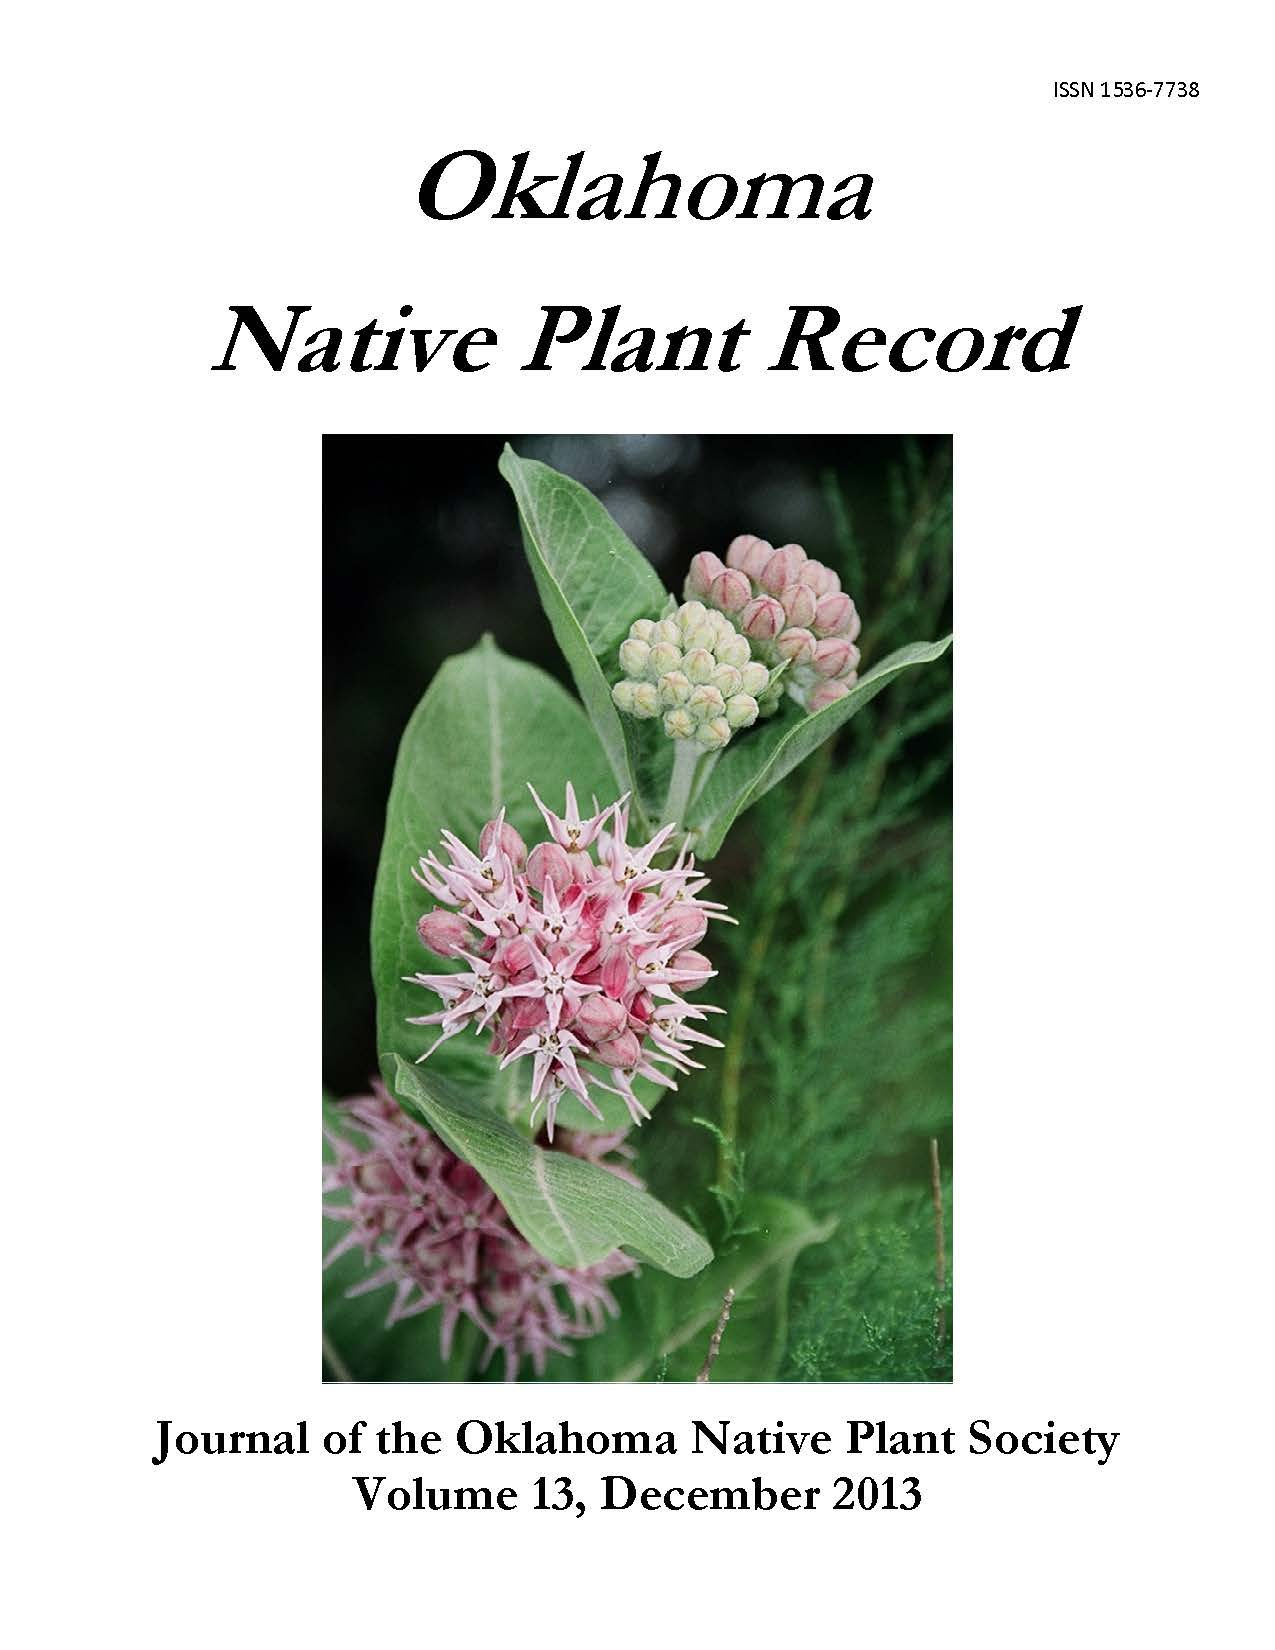 Cover photo: Aesclepias speciosa by Leslie Cole, ONPS photo contest winner